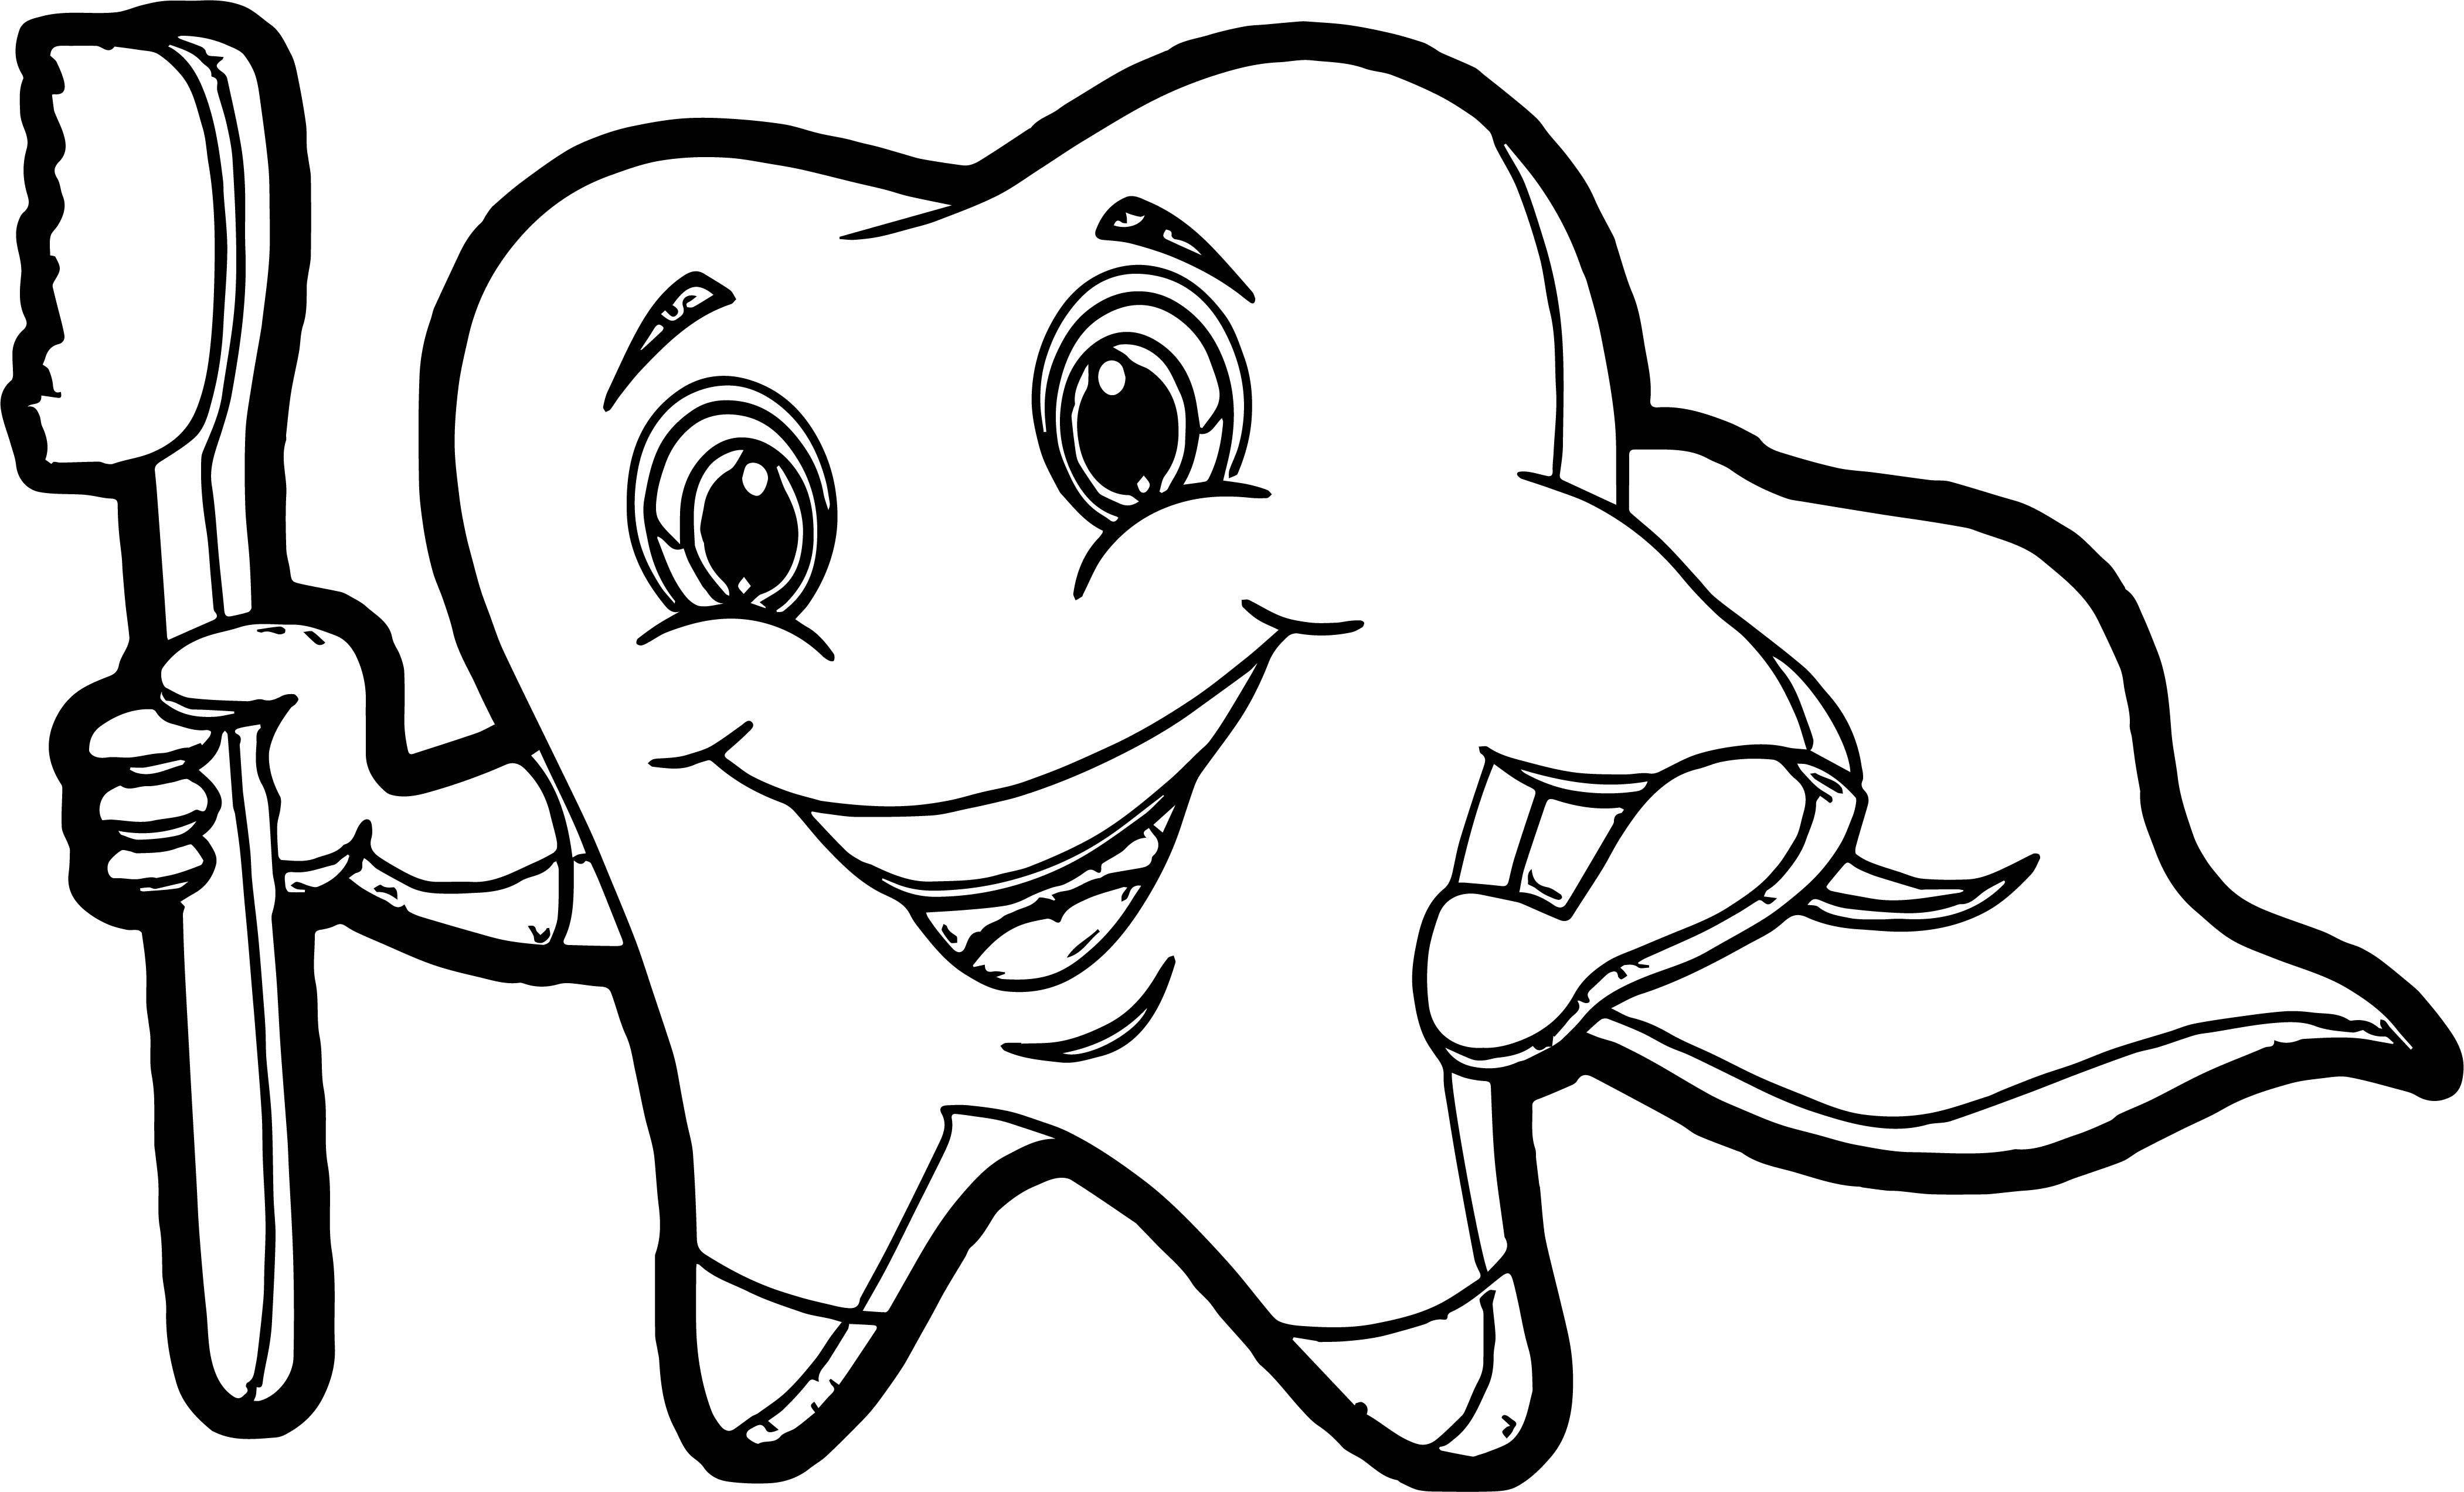 Tooth Brushing Himself At Dentist Coloring Pages Coloring For Kids